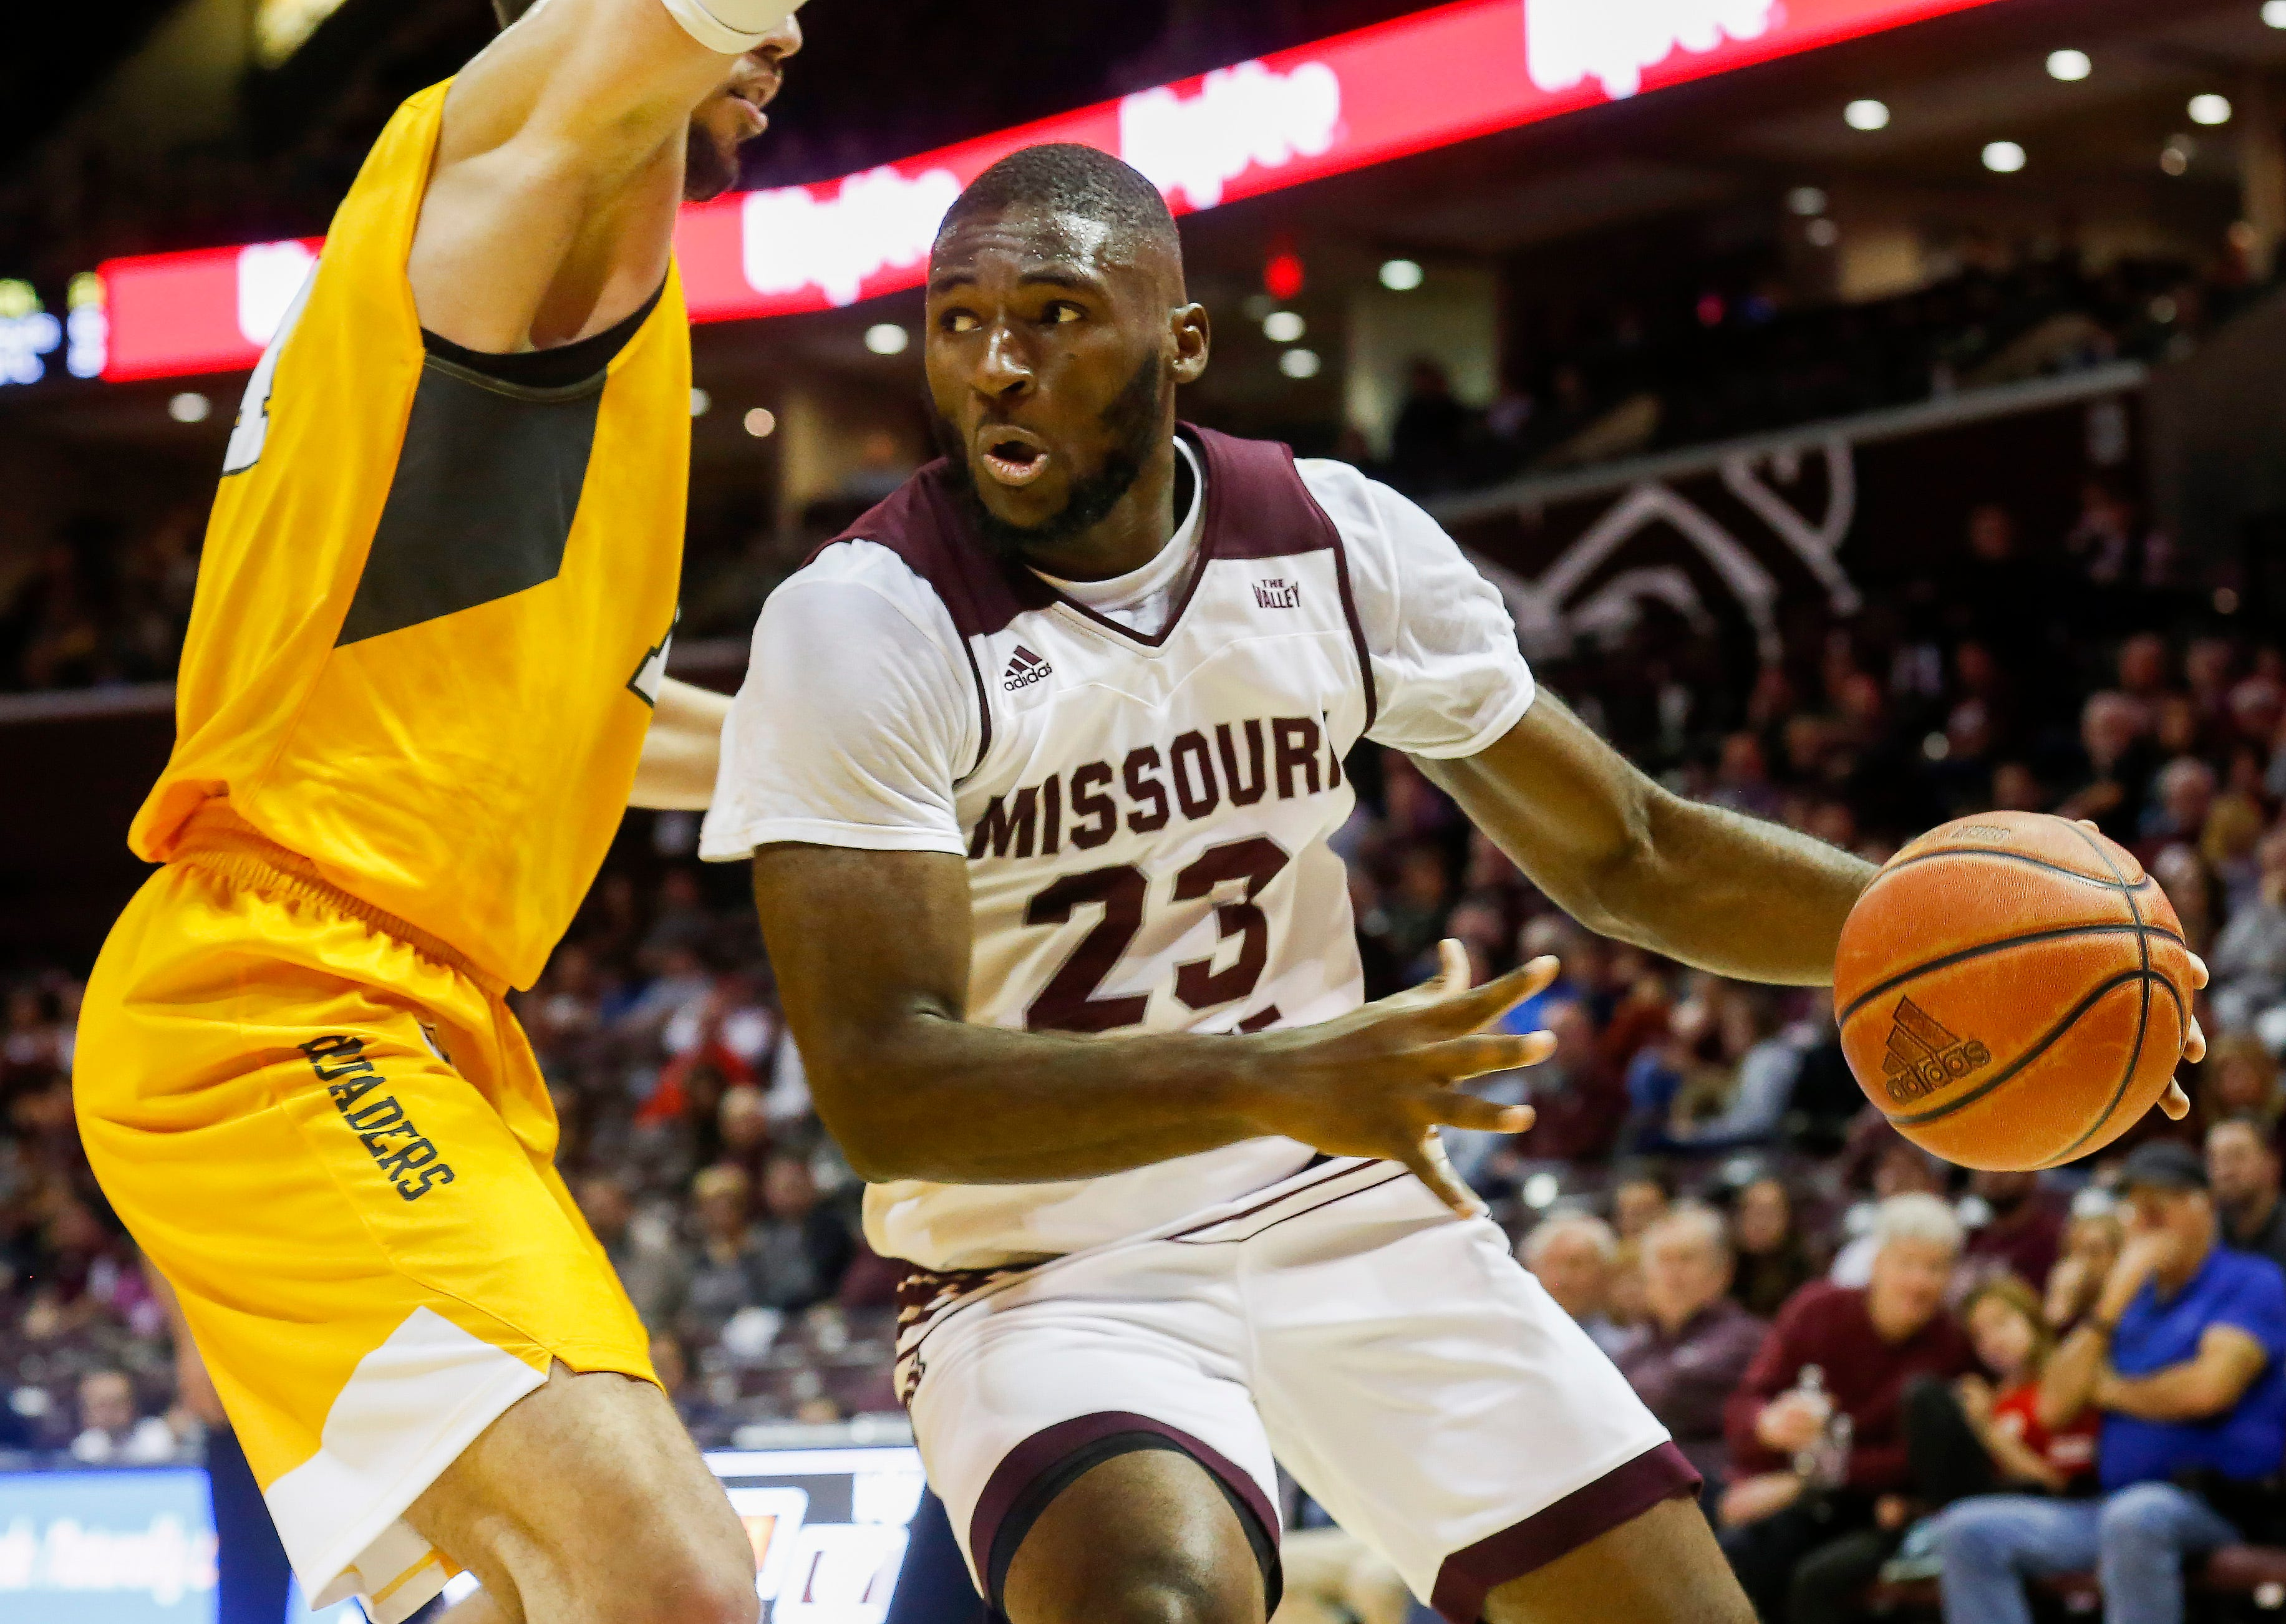 Missouri State University lost to Valparaiso 82-66 at JQH Arena on Saturday, Jan. 5, 2018.